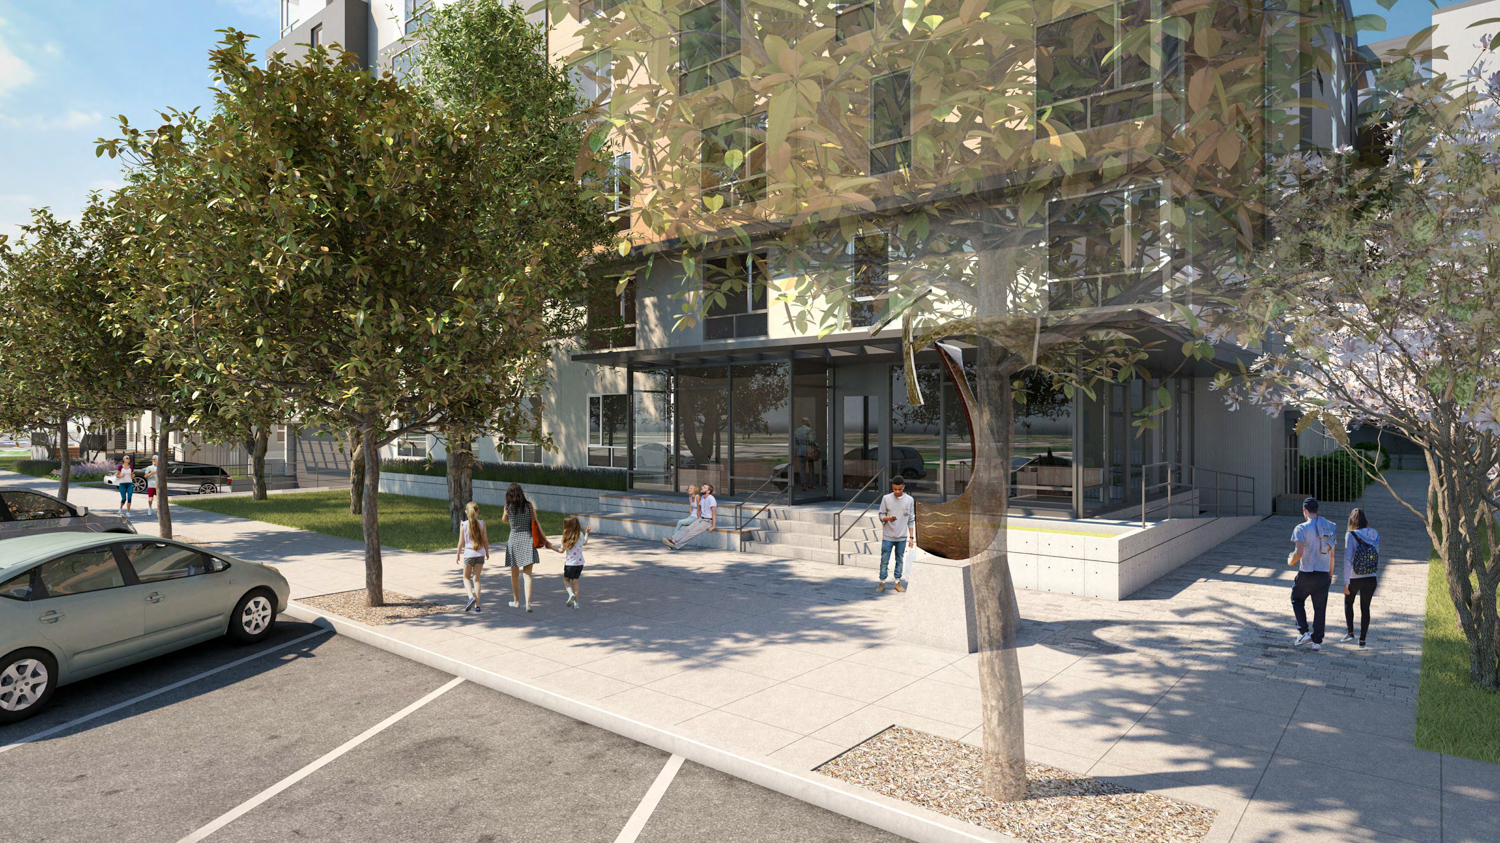 2015 Blake Street pedestrian experience, rendering courtesy Lowney Architects